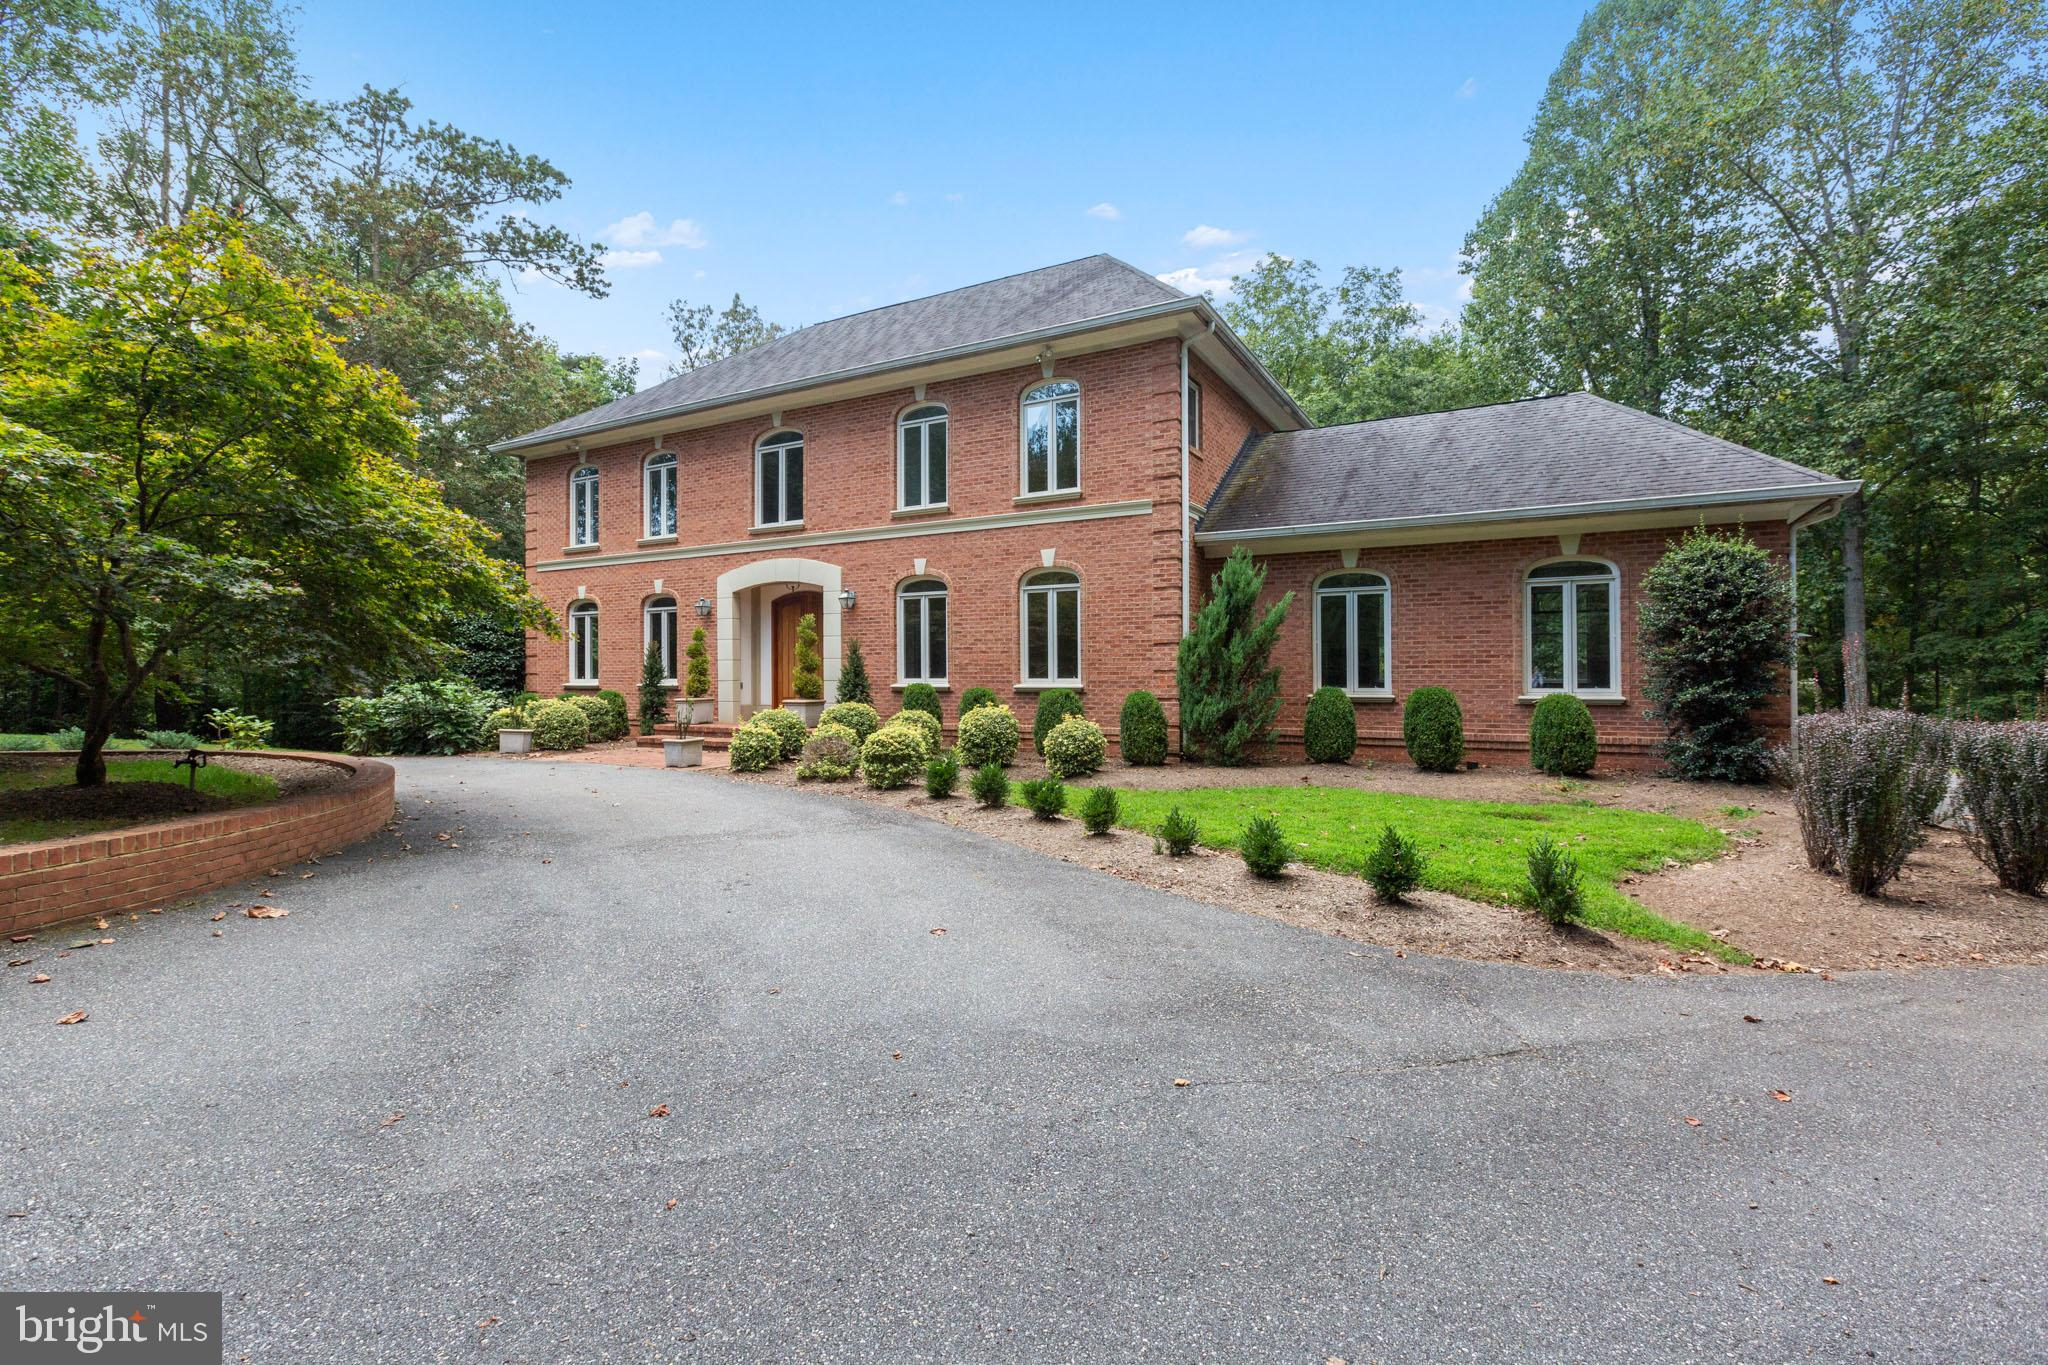 9121 MILL POND VALLEY Dr, Mclean, VA, 22102